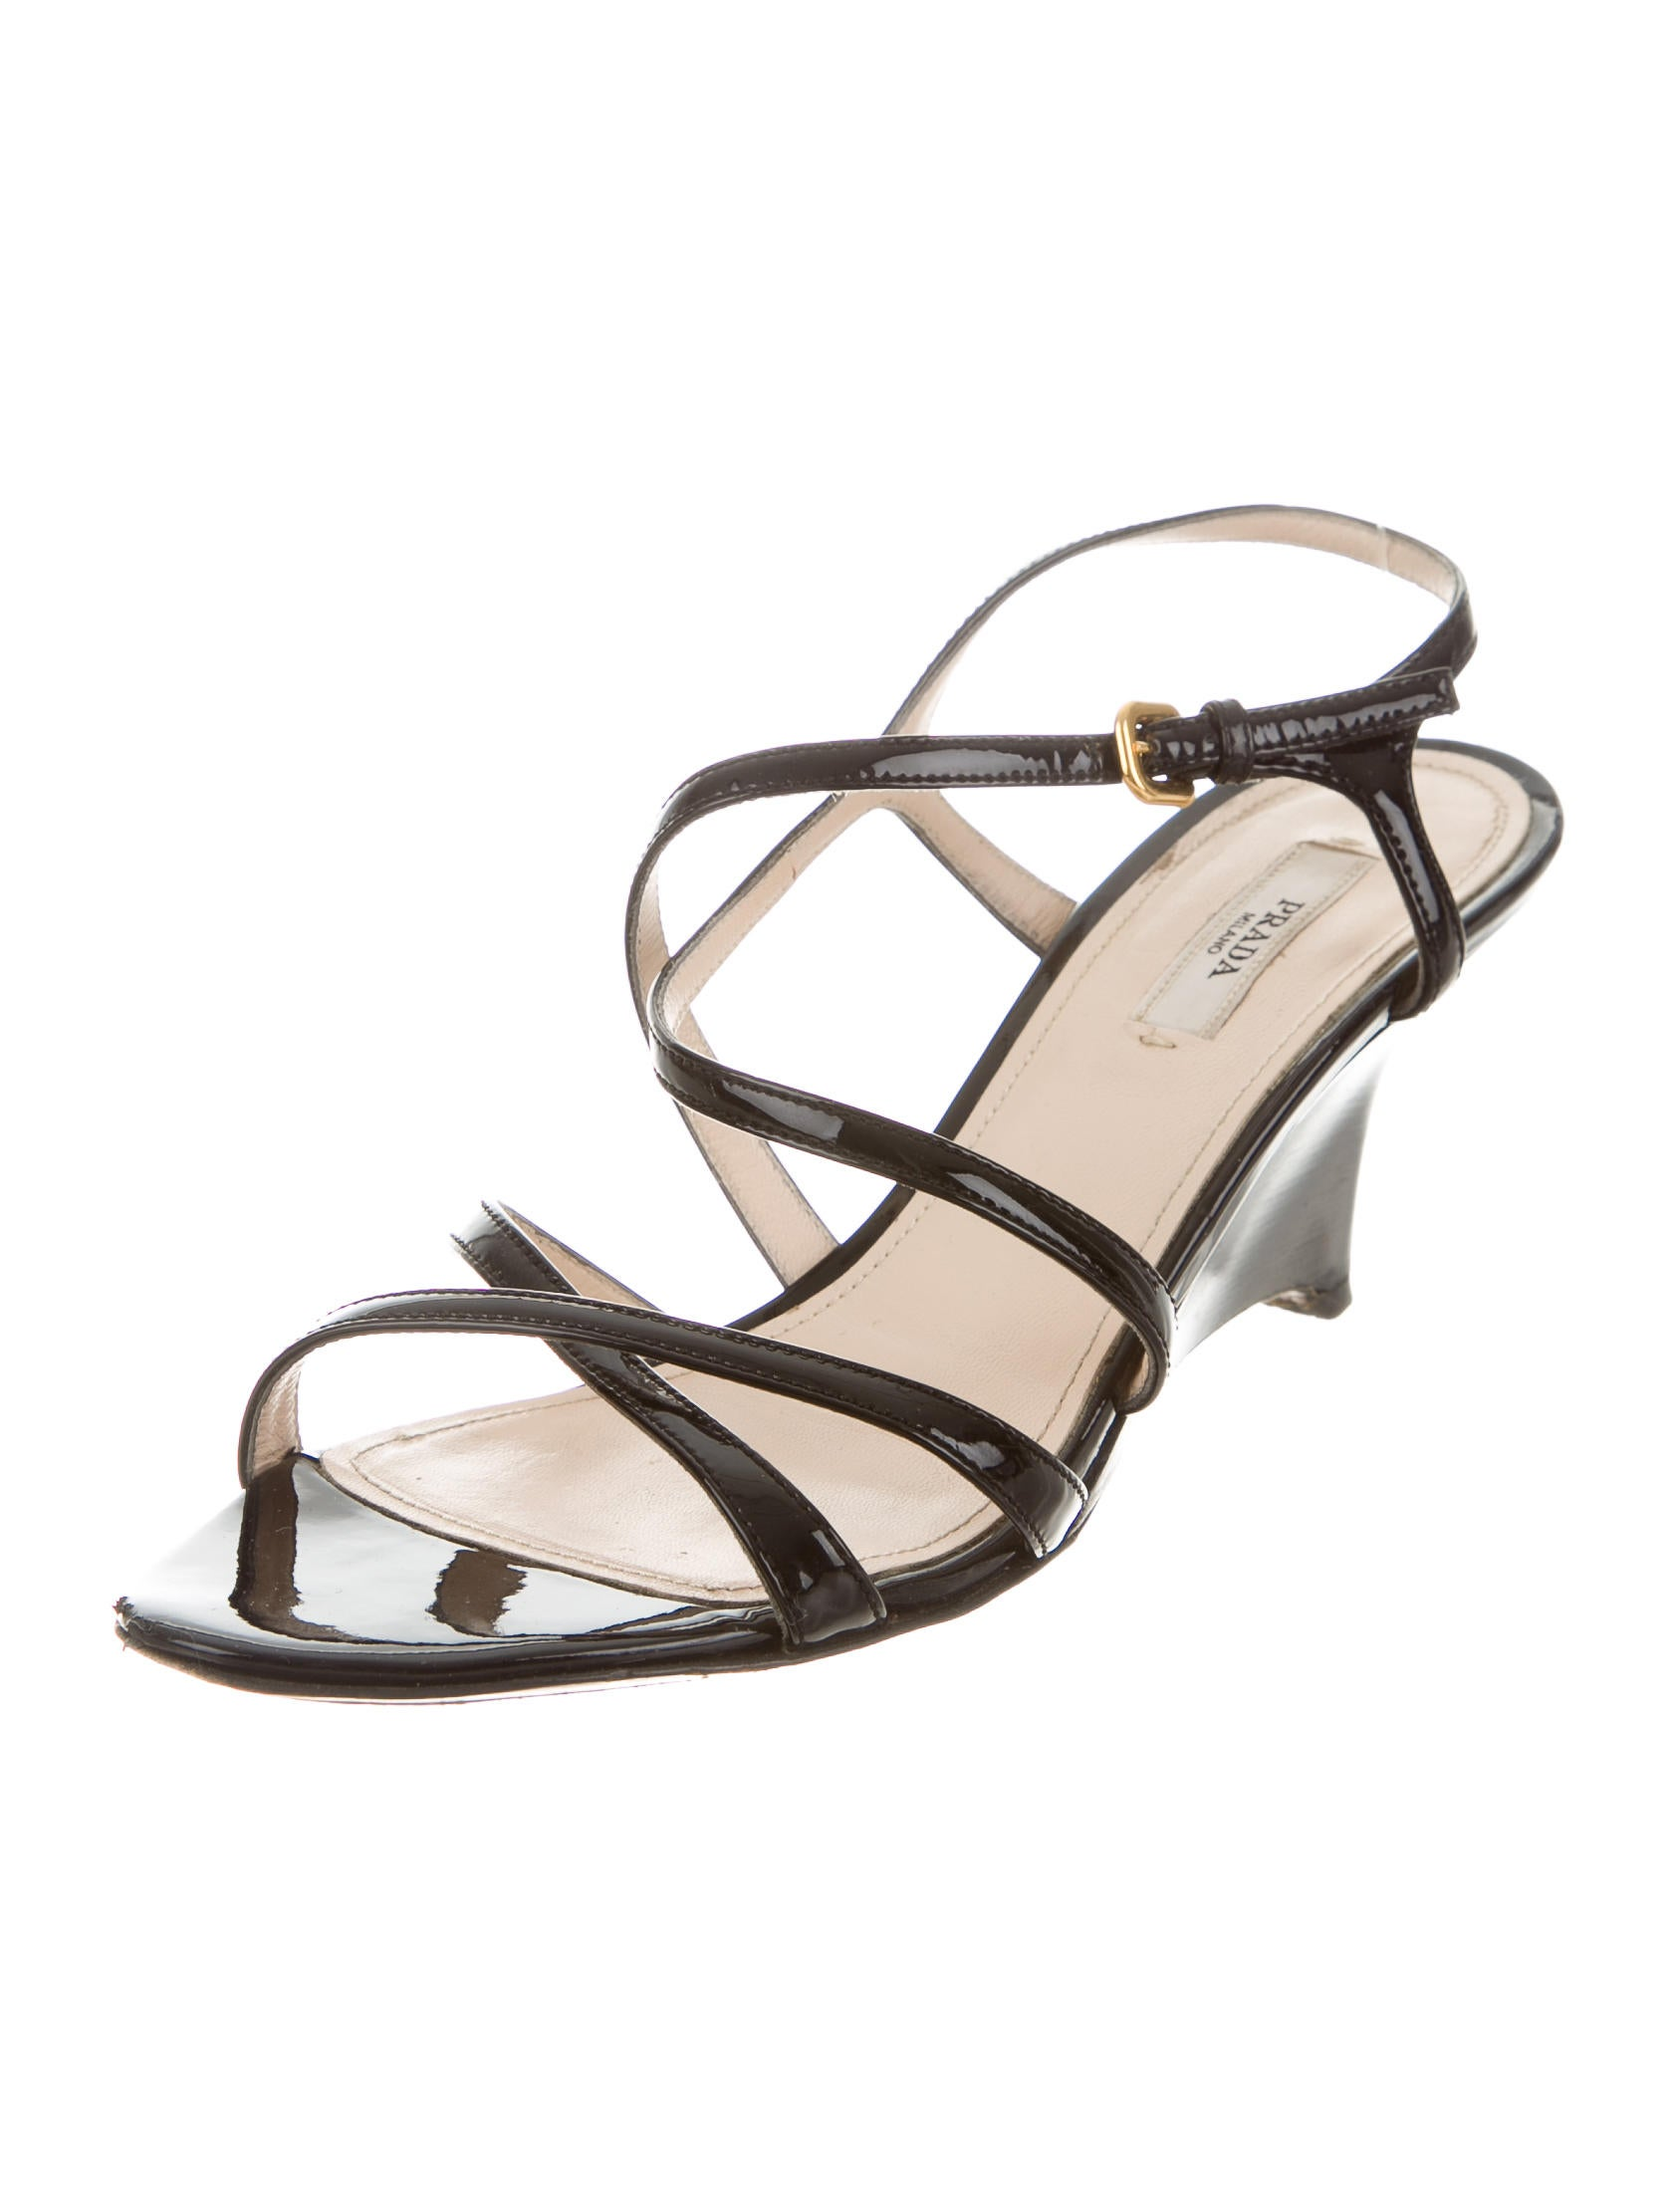 prada patent leather wedge sandals shoes pra118572